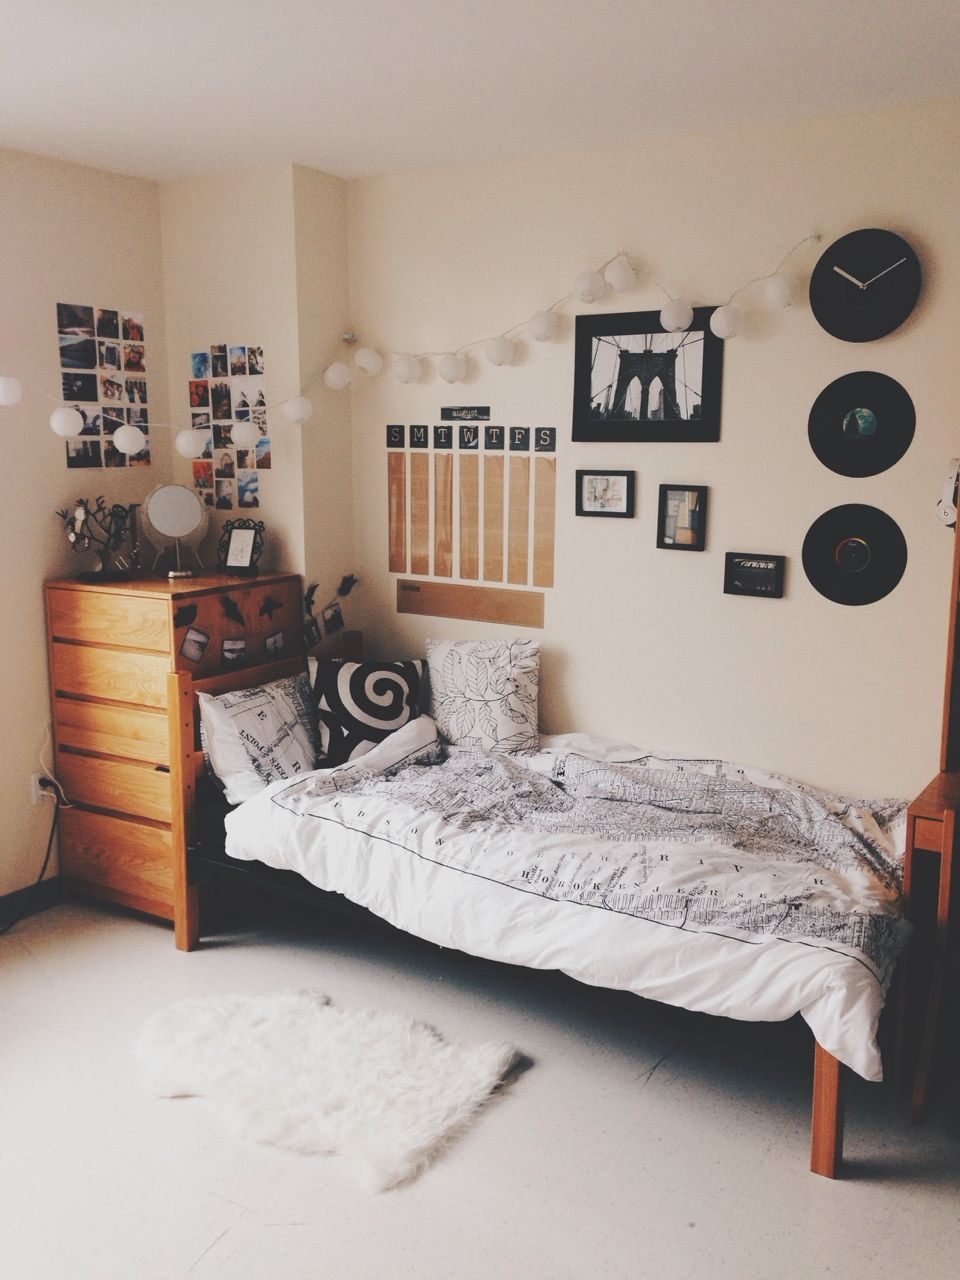 pinceline martens on room ideas | pinterest | freshman, dorm